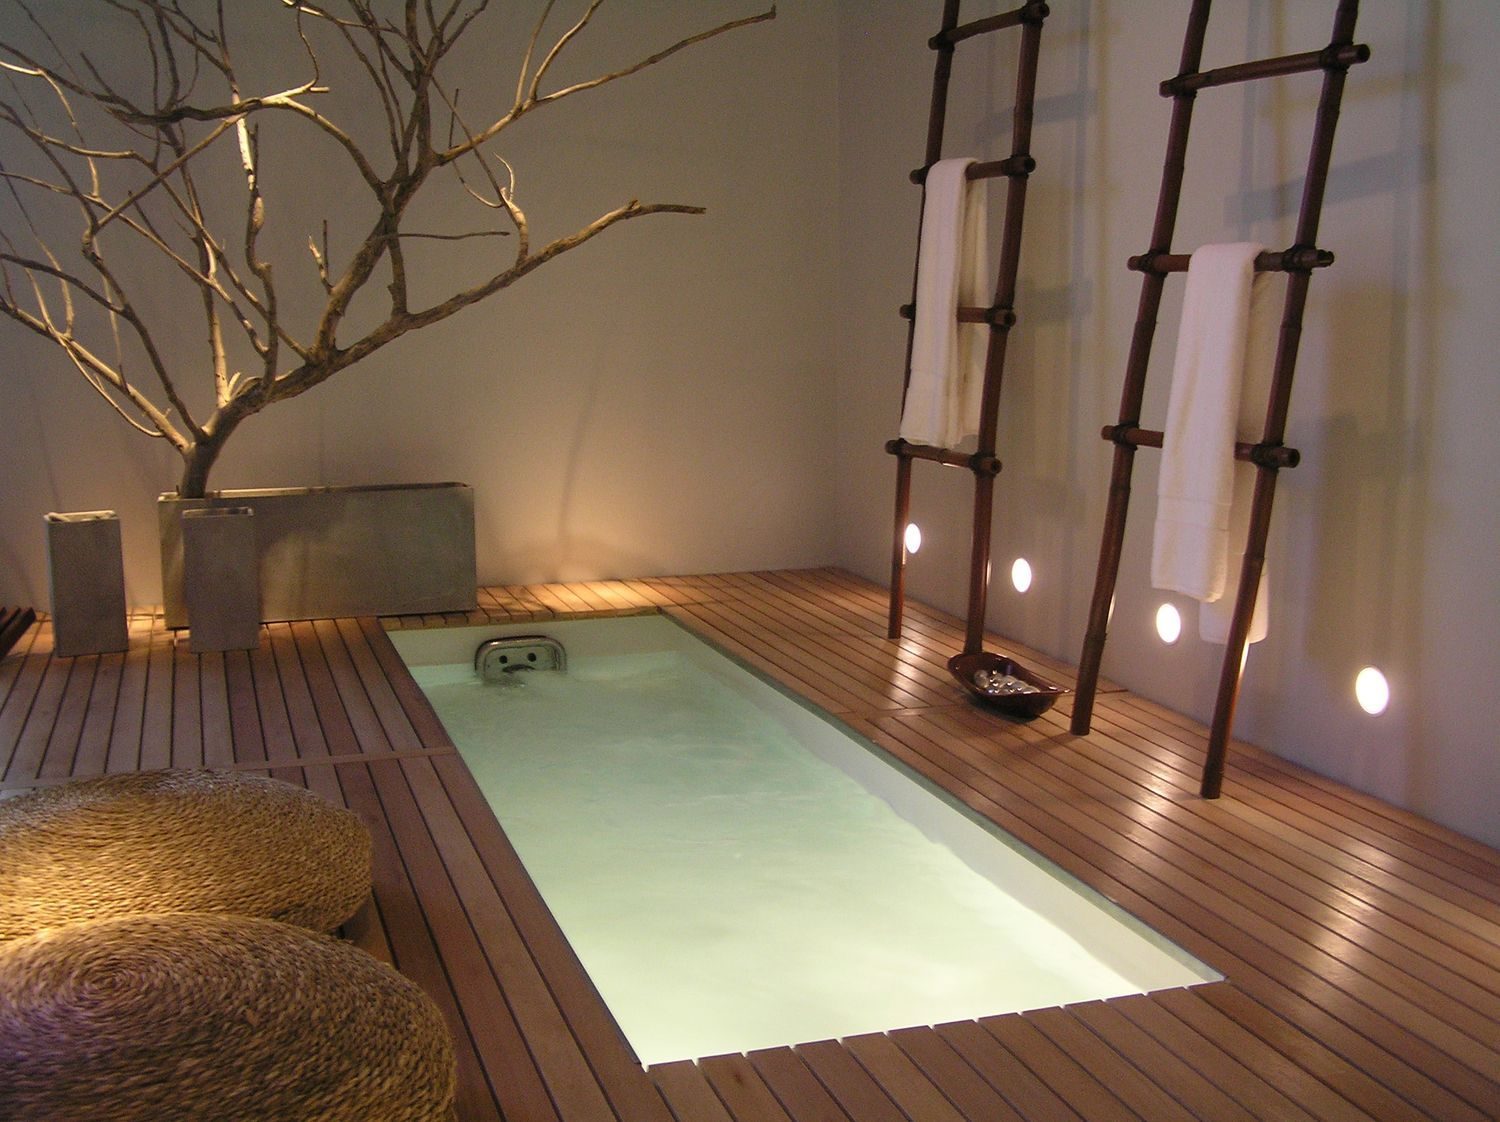 Japanese Bathroom Decor exotic bathroom [1500 x 1132] | japanese bath, room pictures and